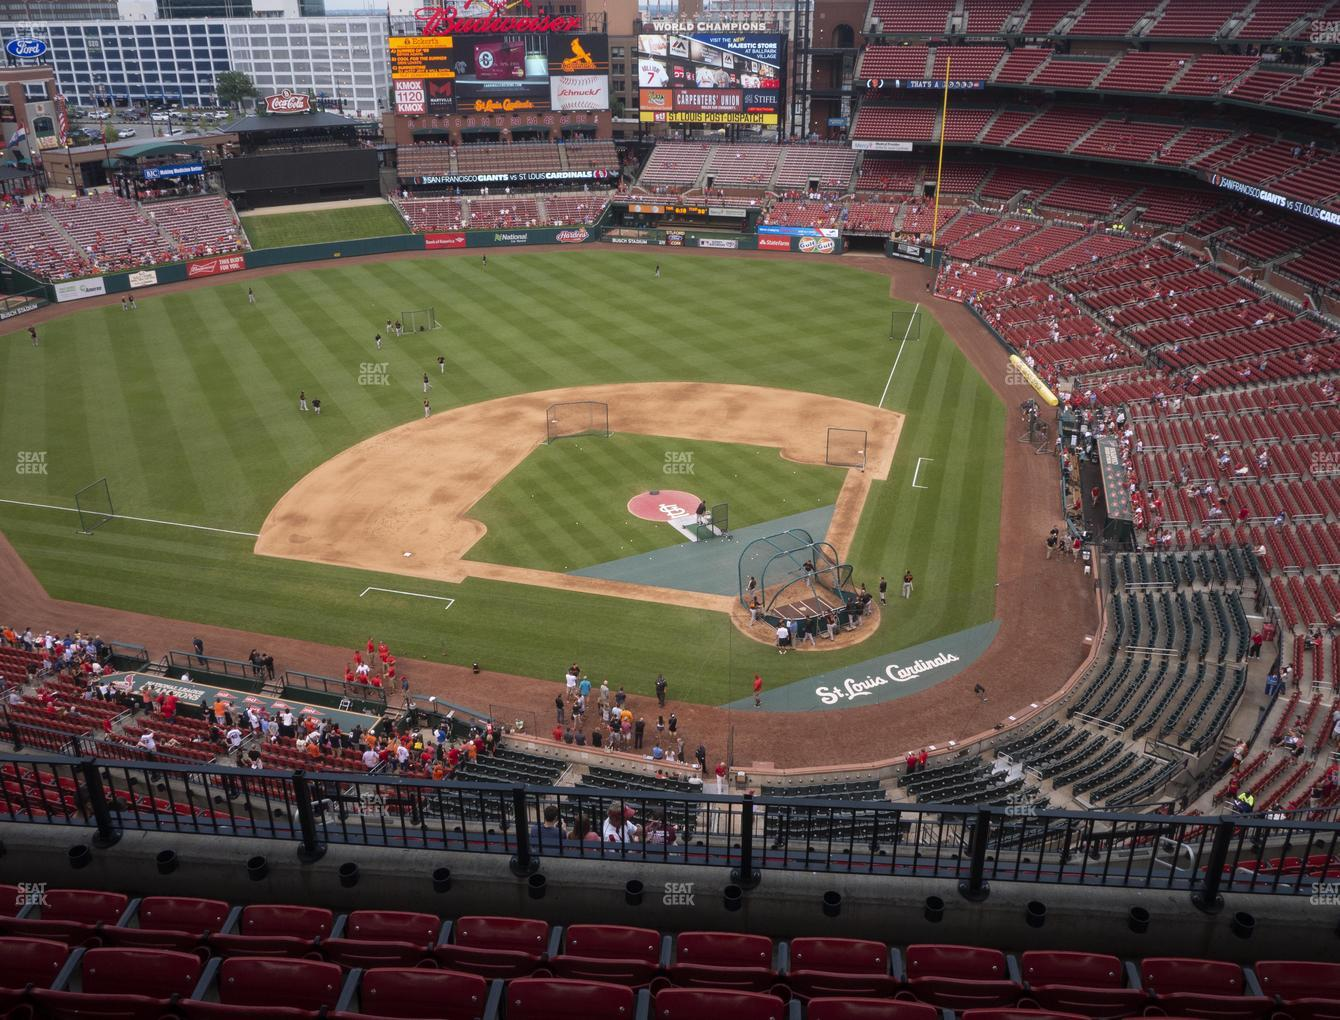 St. Louis Cardinals at Busch Stadium Infield Terrace 453 View